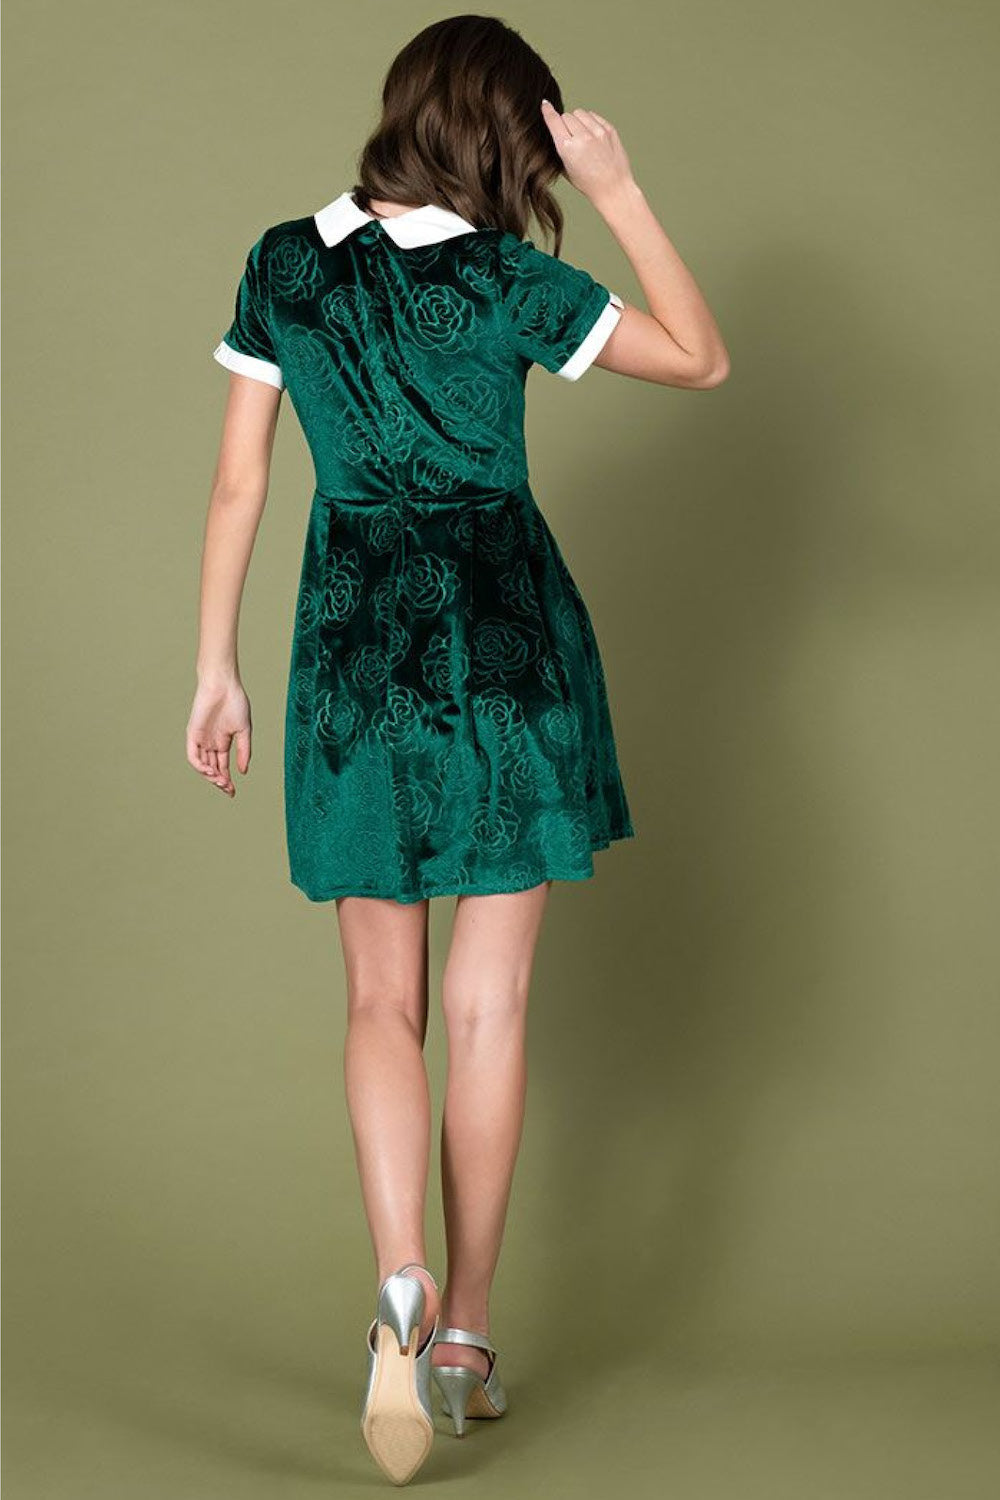 Green Velvet Floral Embossed Babe Revolution Fit & Flare Dress by Smak Parlour